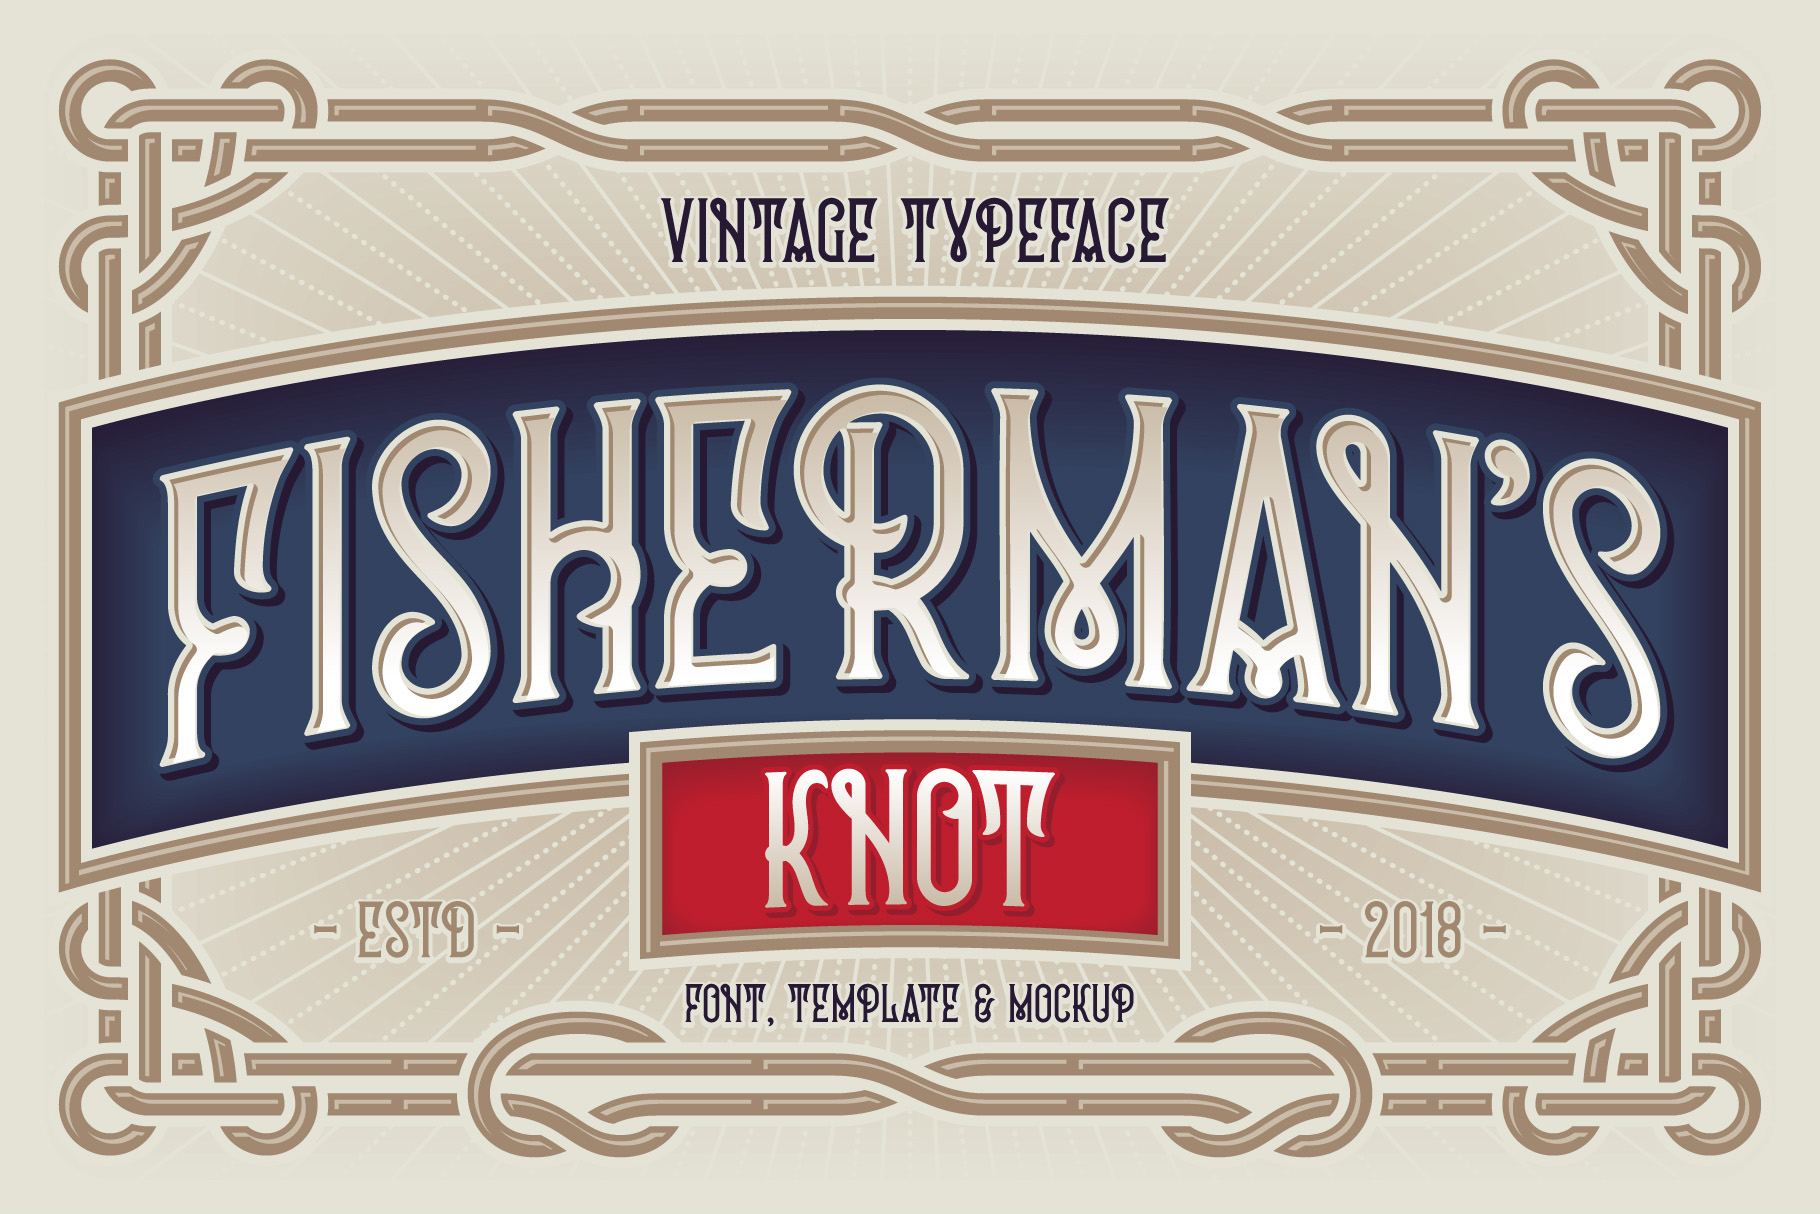 Fisherman's Knot. Font & Graphics example image 1